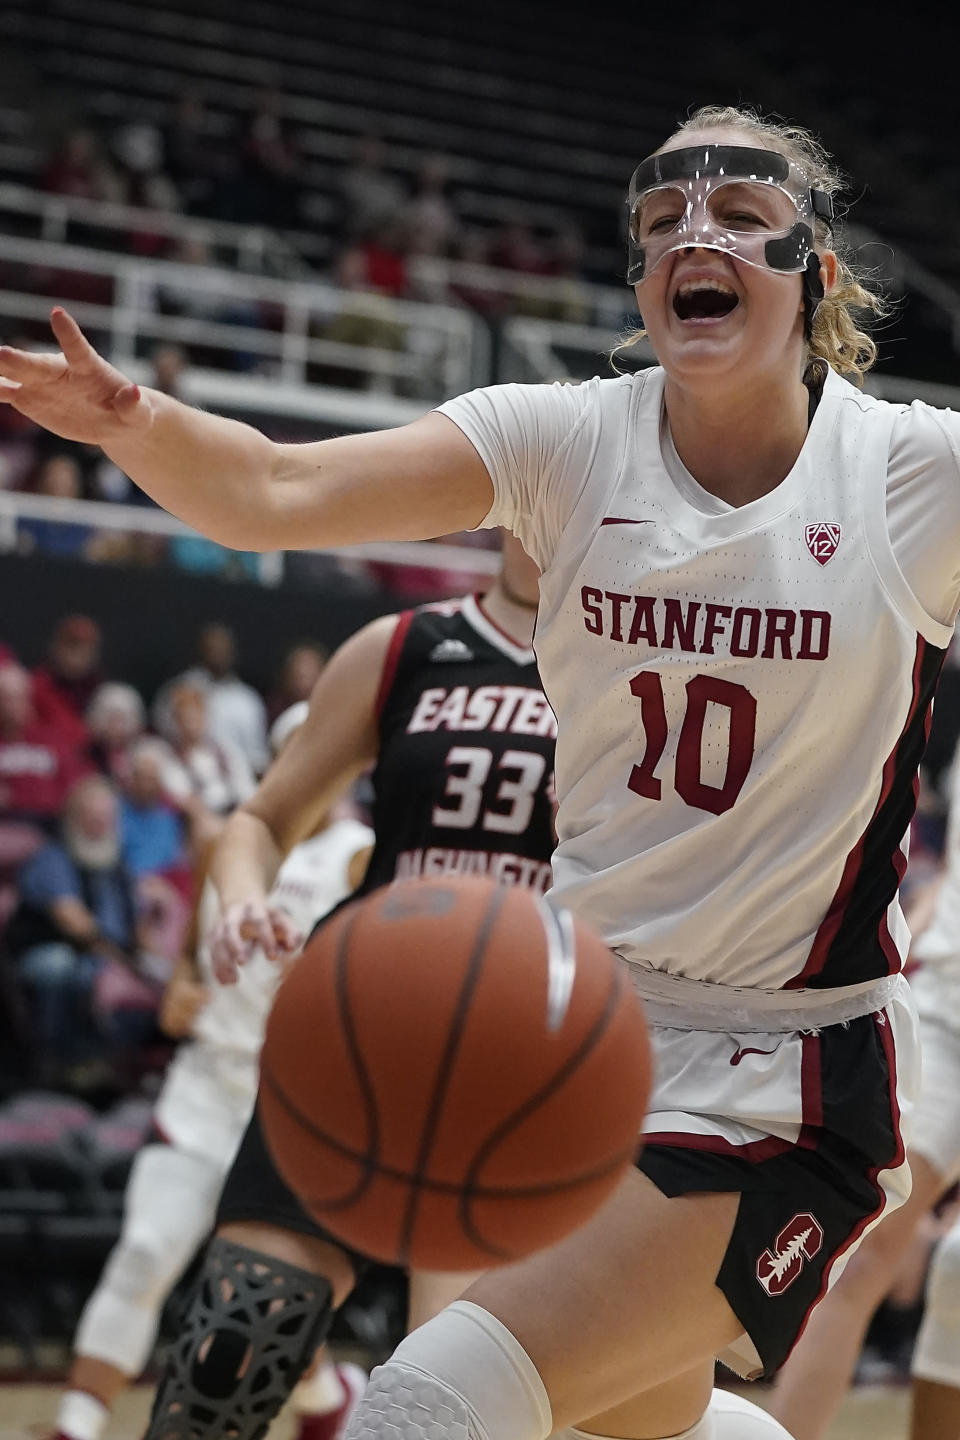 Stanford forward Alyssa Jerome (10) reacts after losing the ball out of bounds during the first half of the team's NCAA college basketball game against Eastern Washington on Tuesday, Nov. 5, 2019, in Stanford, Calif. (AP Photo/Tony Avelar)